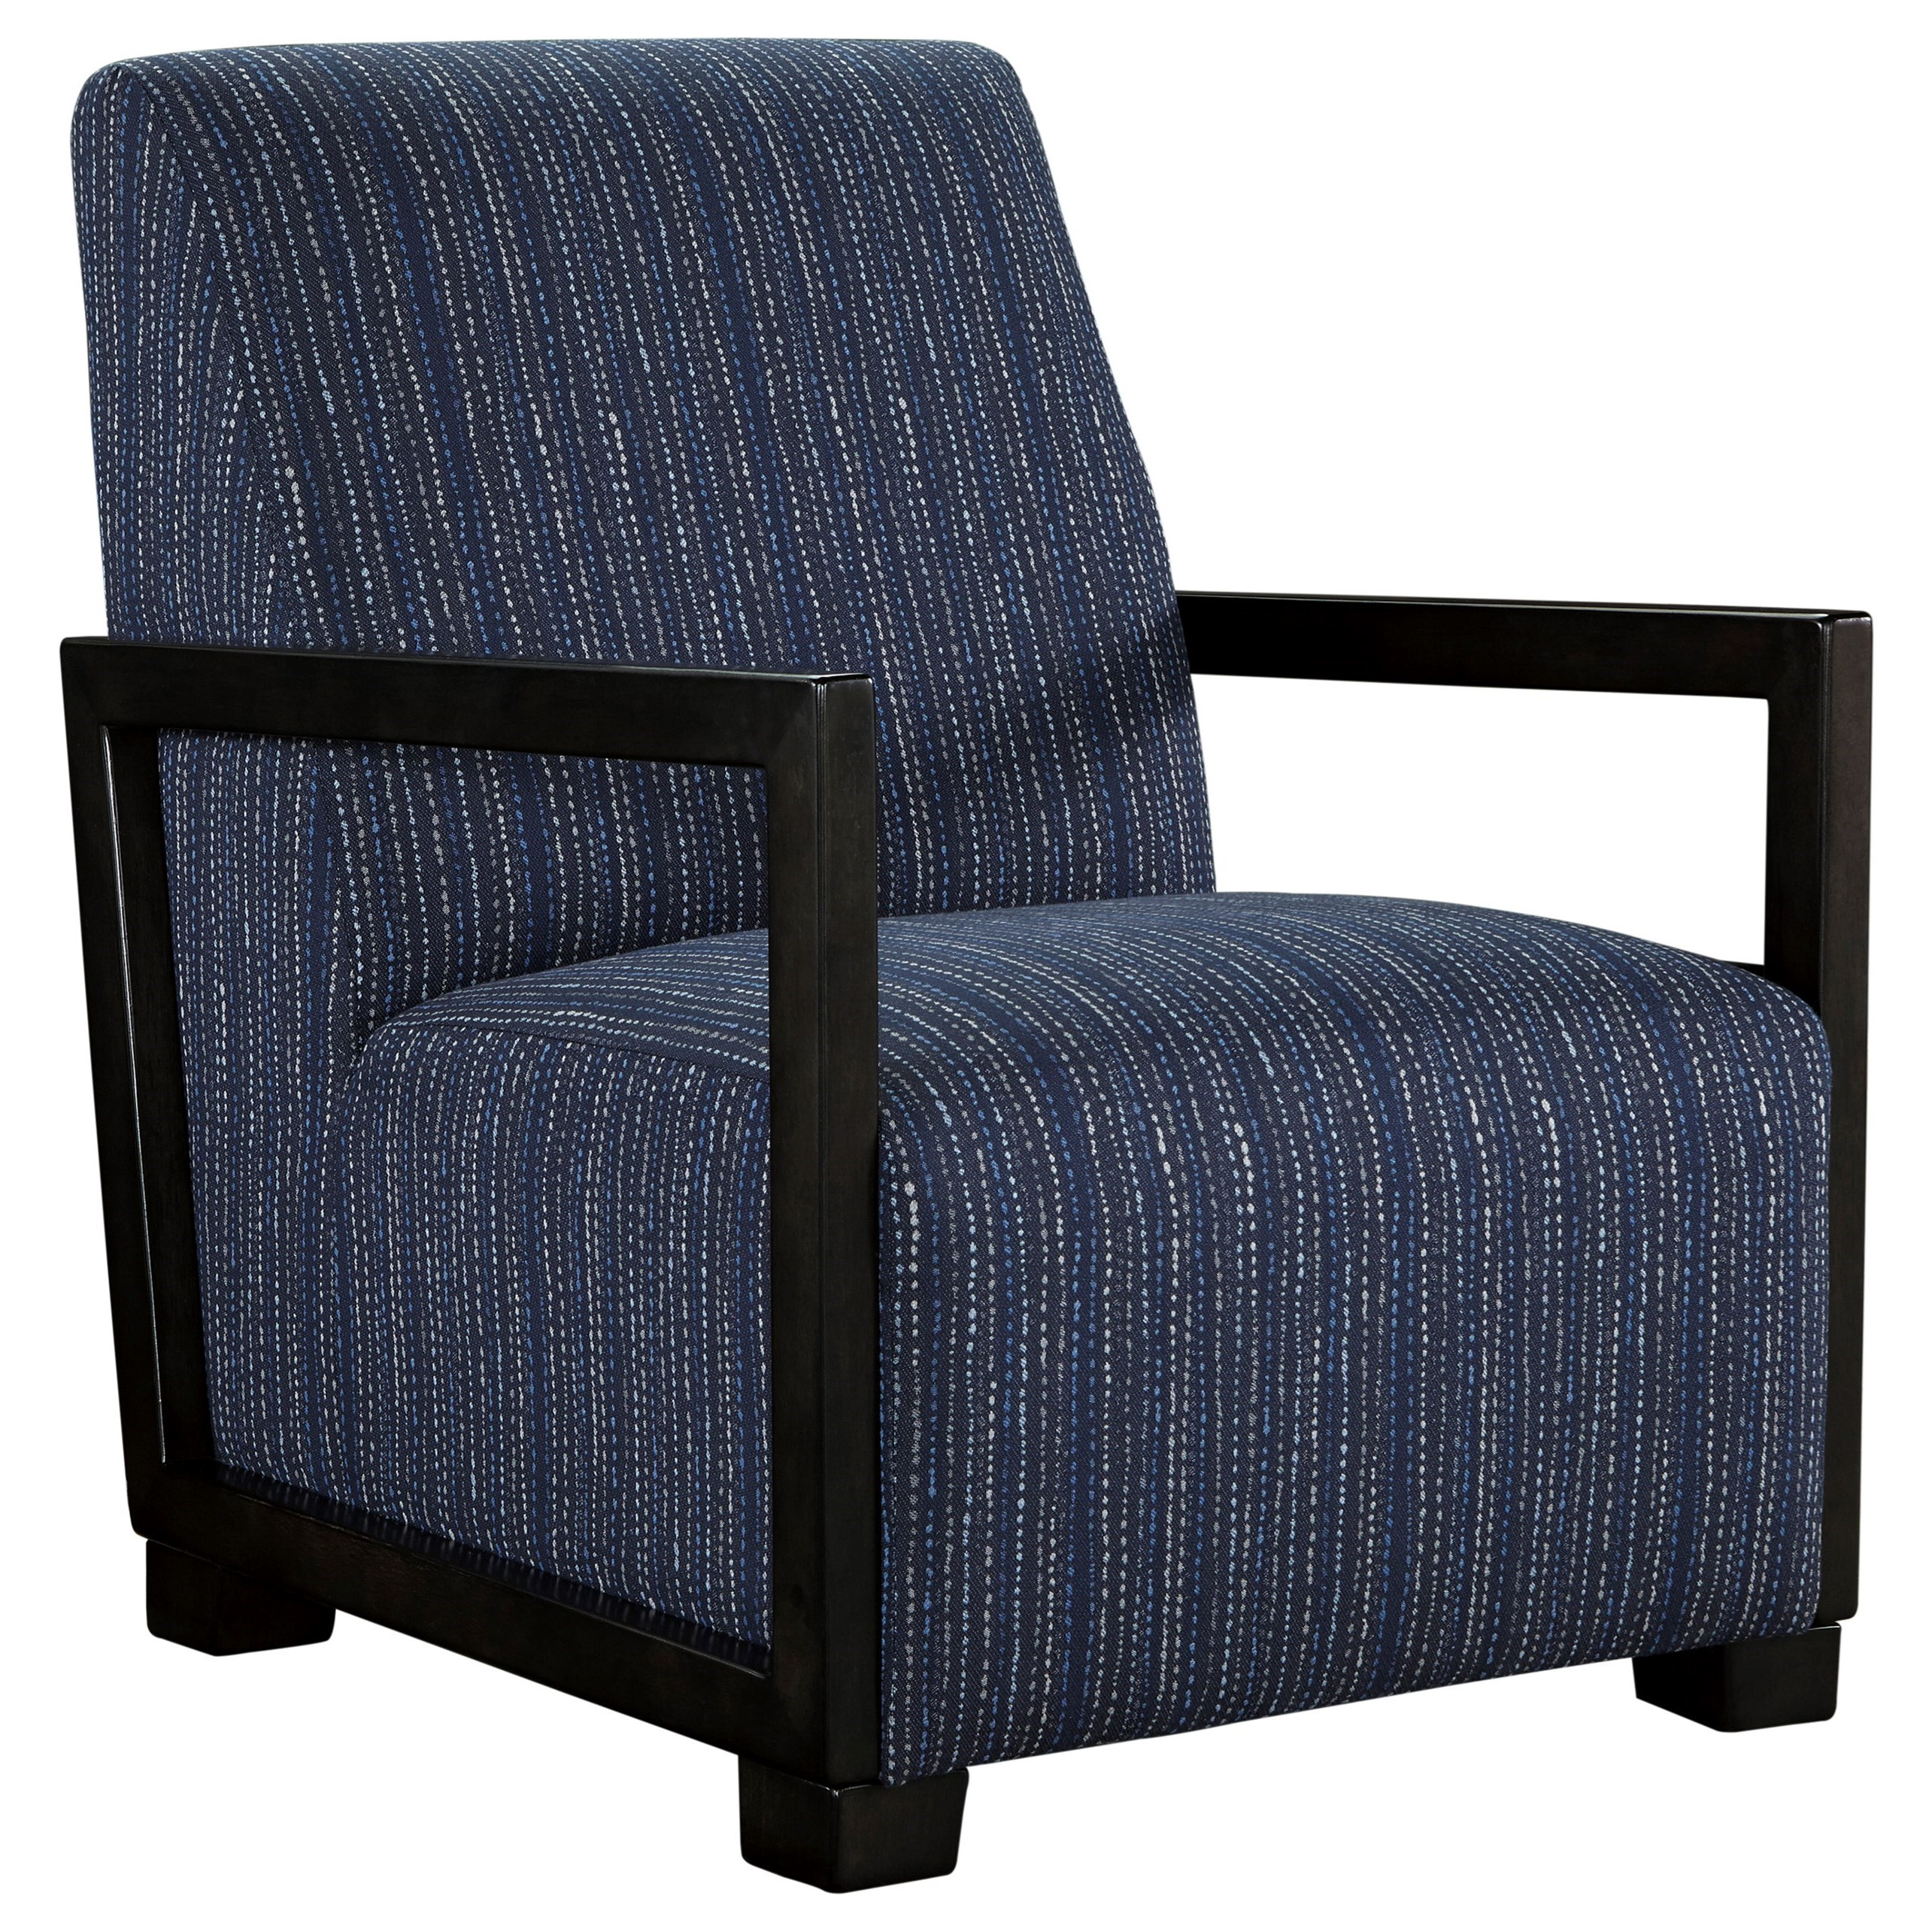 Benchcraft Kendleton Accent Chair - Item Number: 5470460